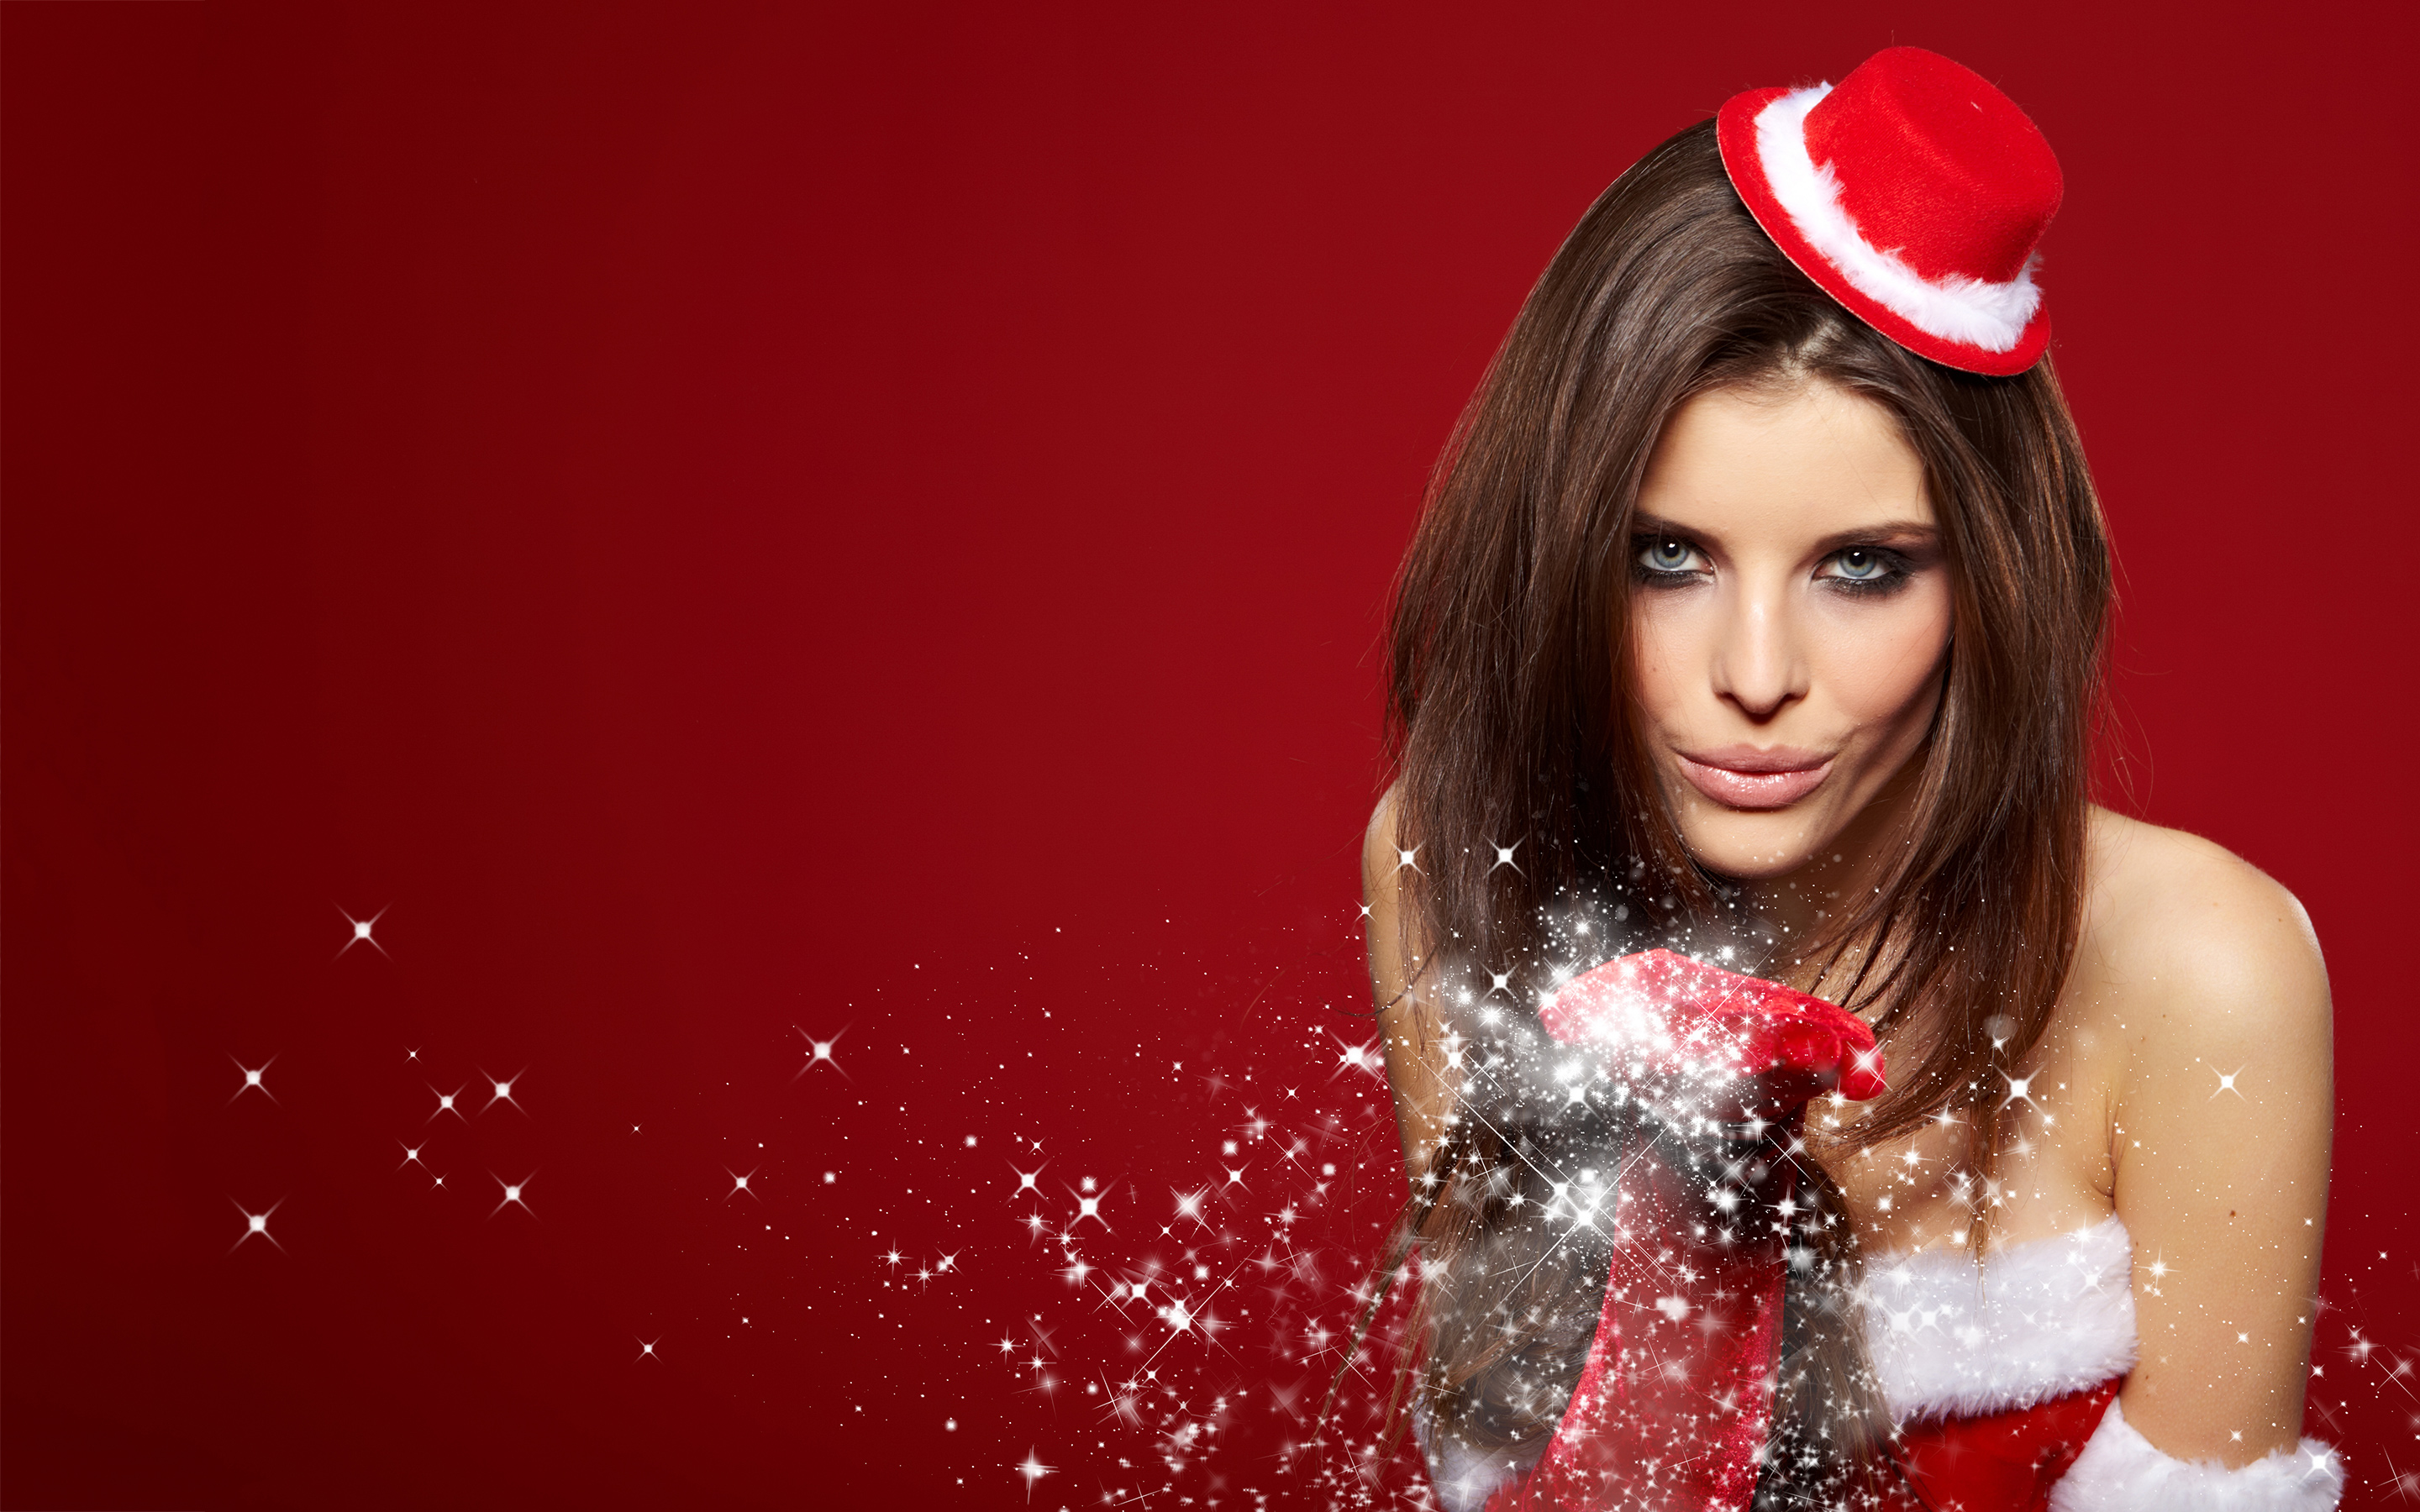 Hot christmas girl wallpapers pictures photos 4783 hd for Hot christmas pics